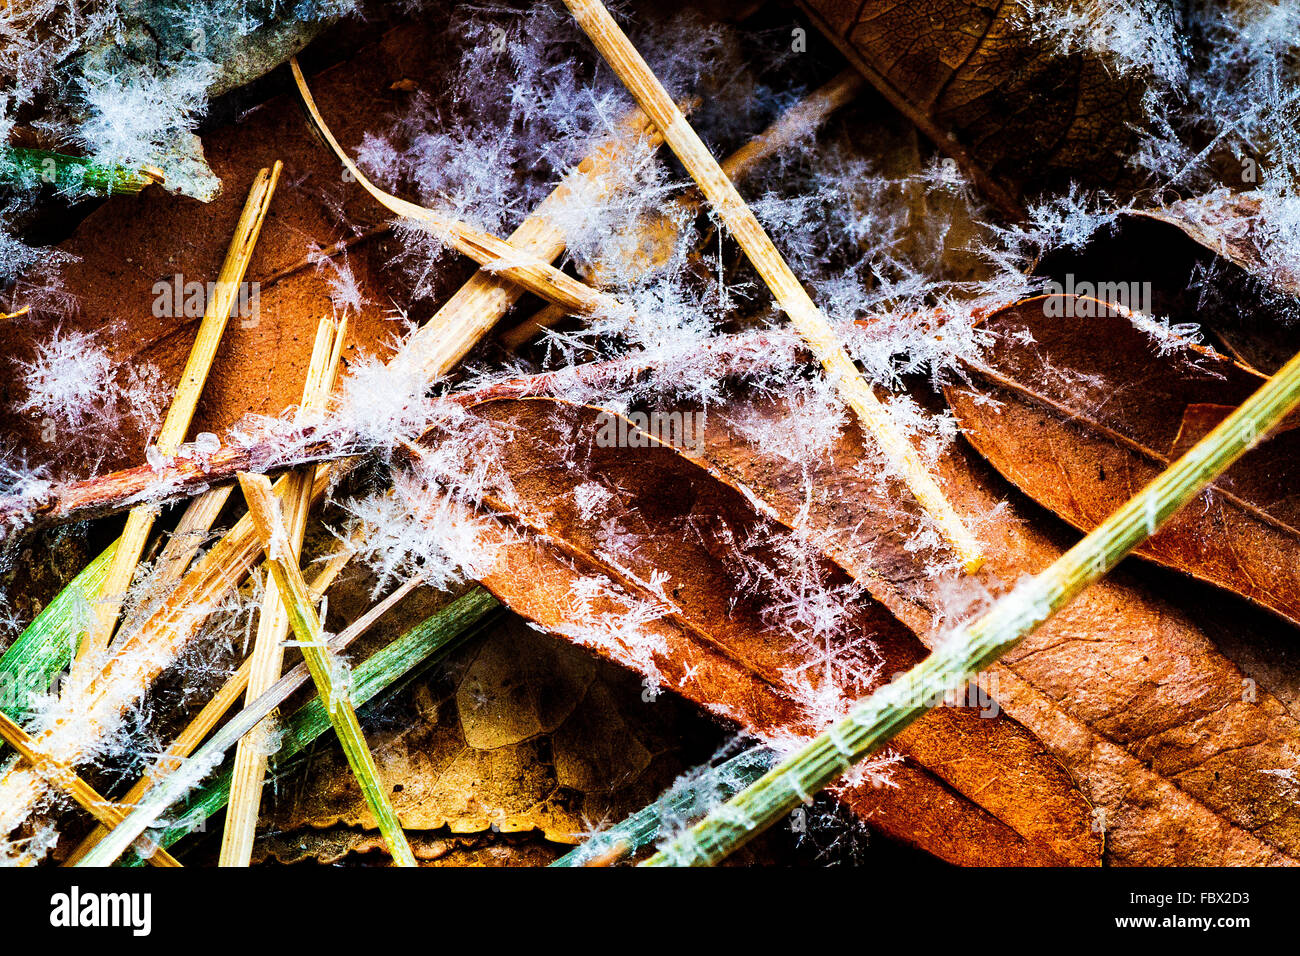 a-group-of-snowflakes-on-leaves-and-grass-created-by-lake-effect-snow-FBX2D3.jpg